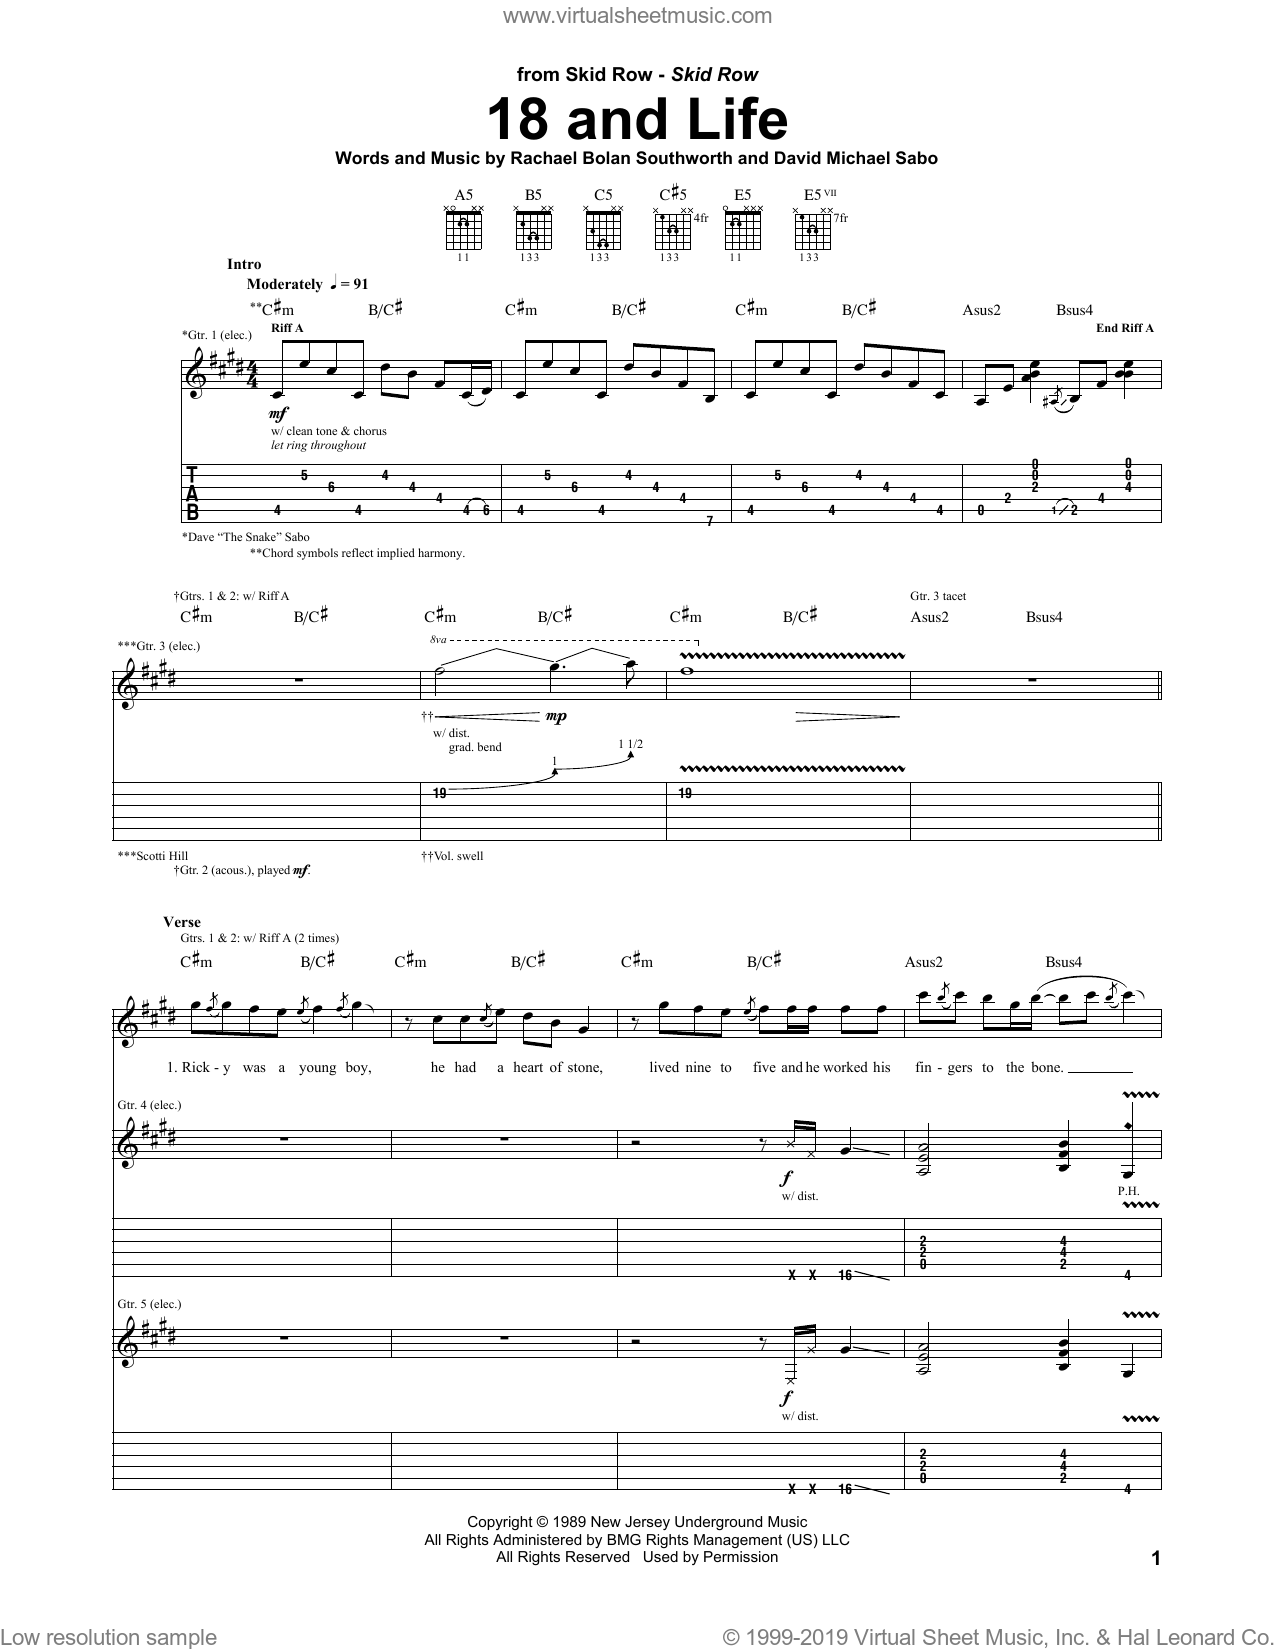 18 And Life sheet music for guitar (tablature) by Rachael Bolan Southworth